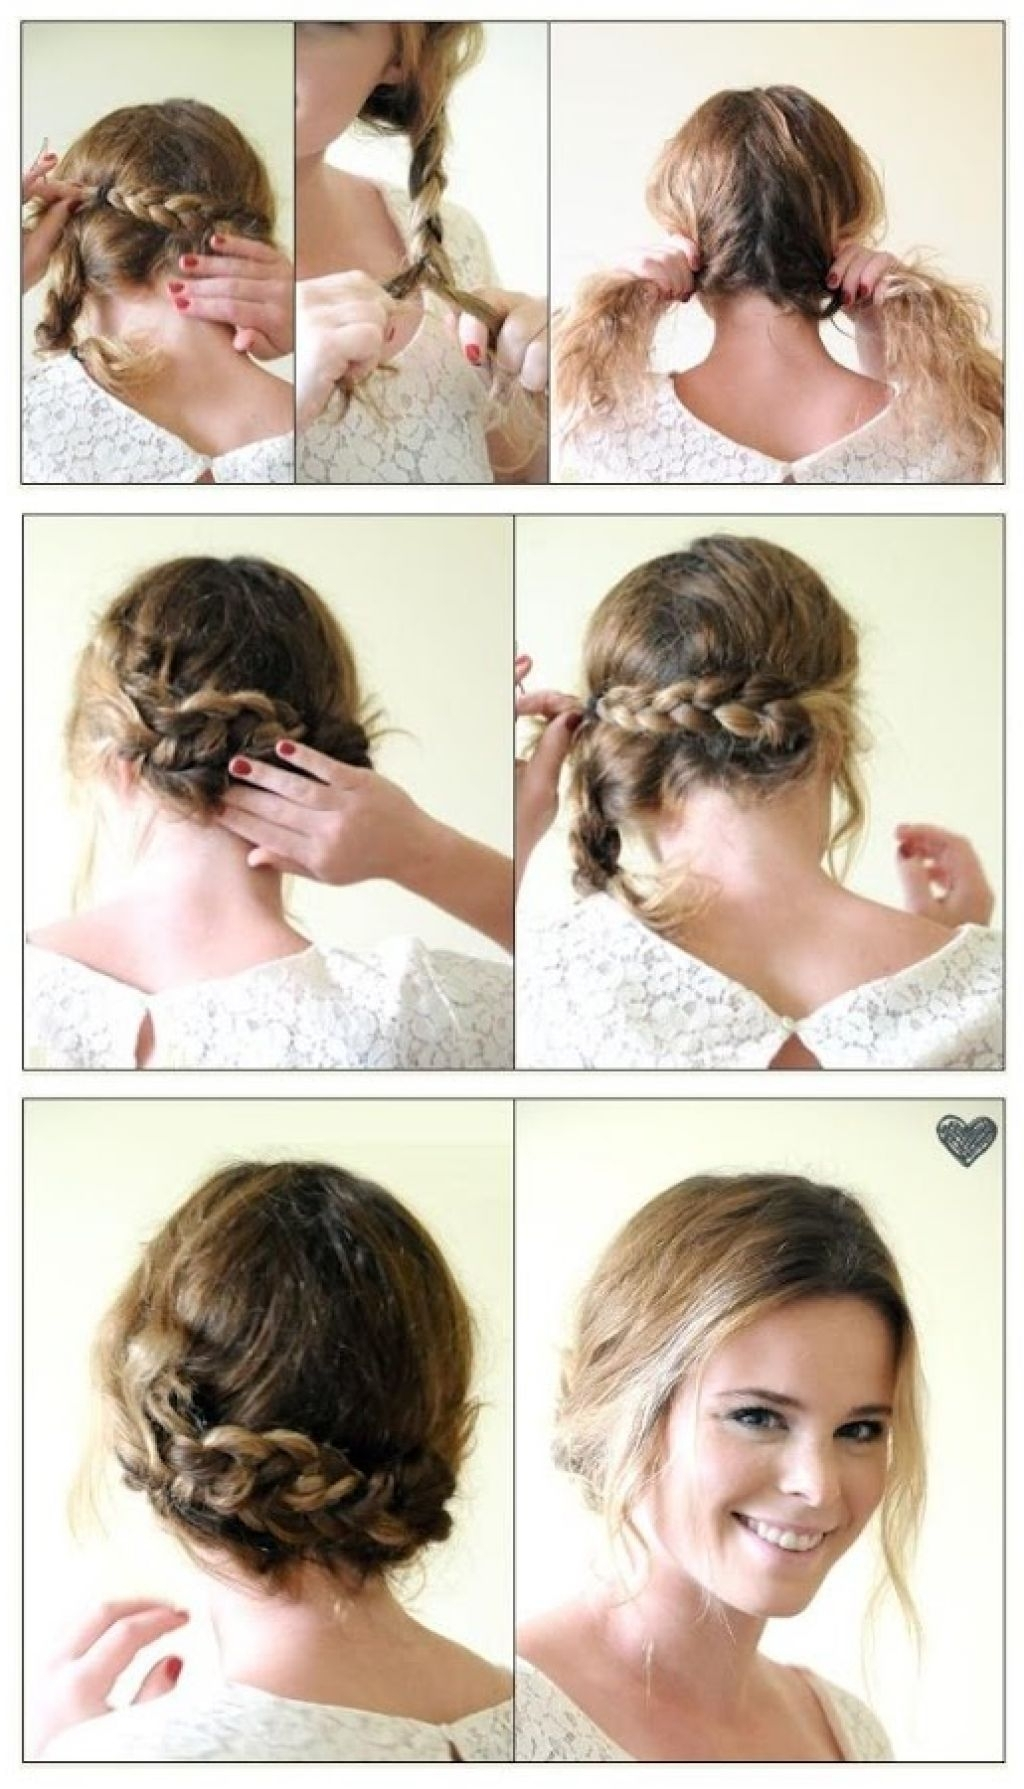 Braided Updo Hairstyles For Short Hair Prom Hairstyles For Long Hair Regarding Messy Updo Hairstyles For Prom (View 13 of 15)